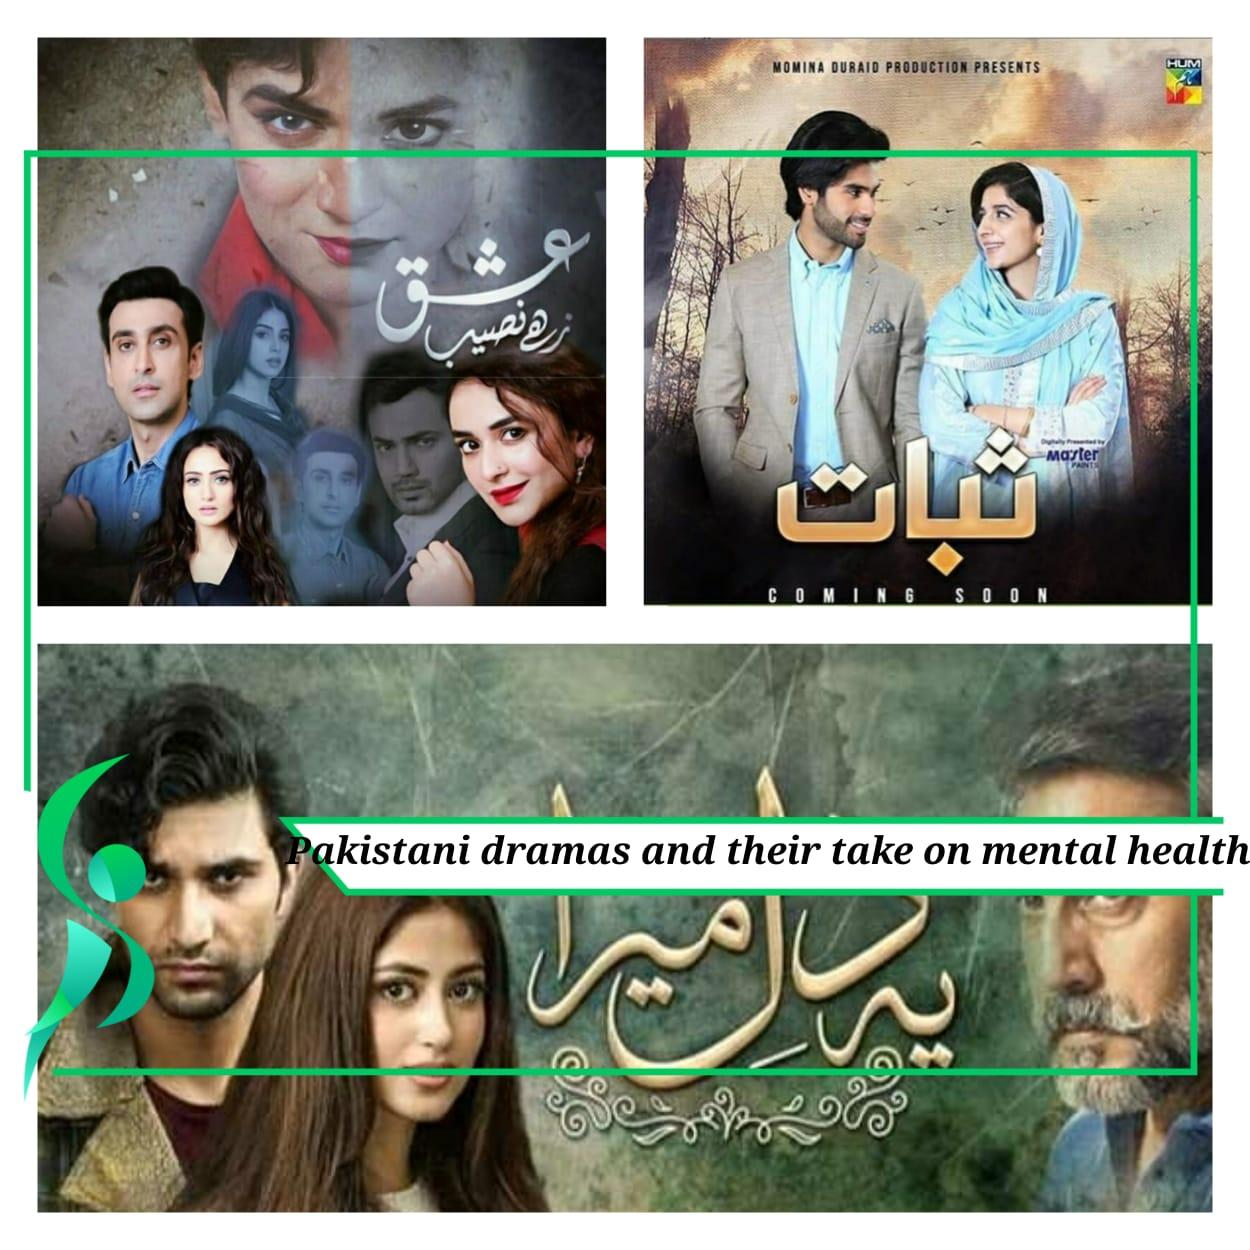 Pakistani dramas have an opinion on mental health.